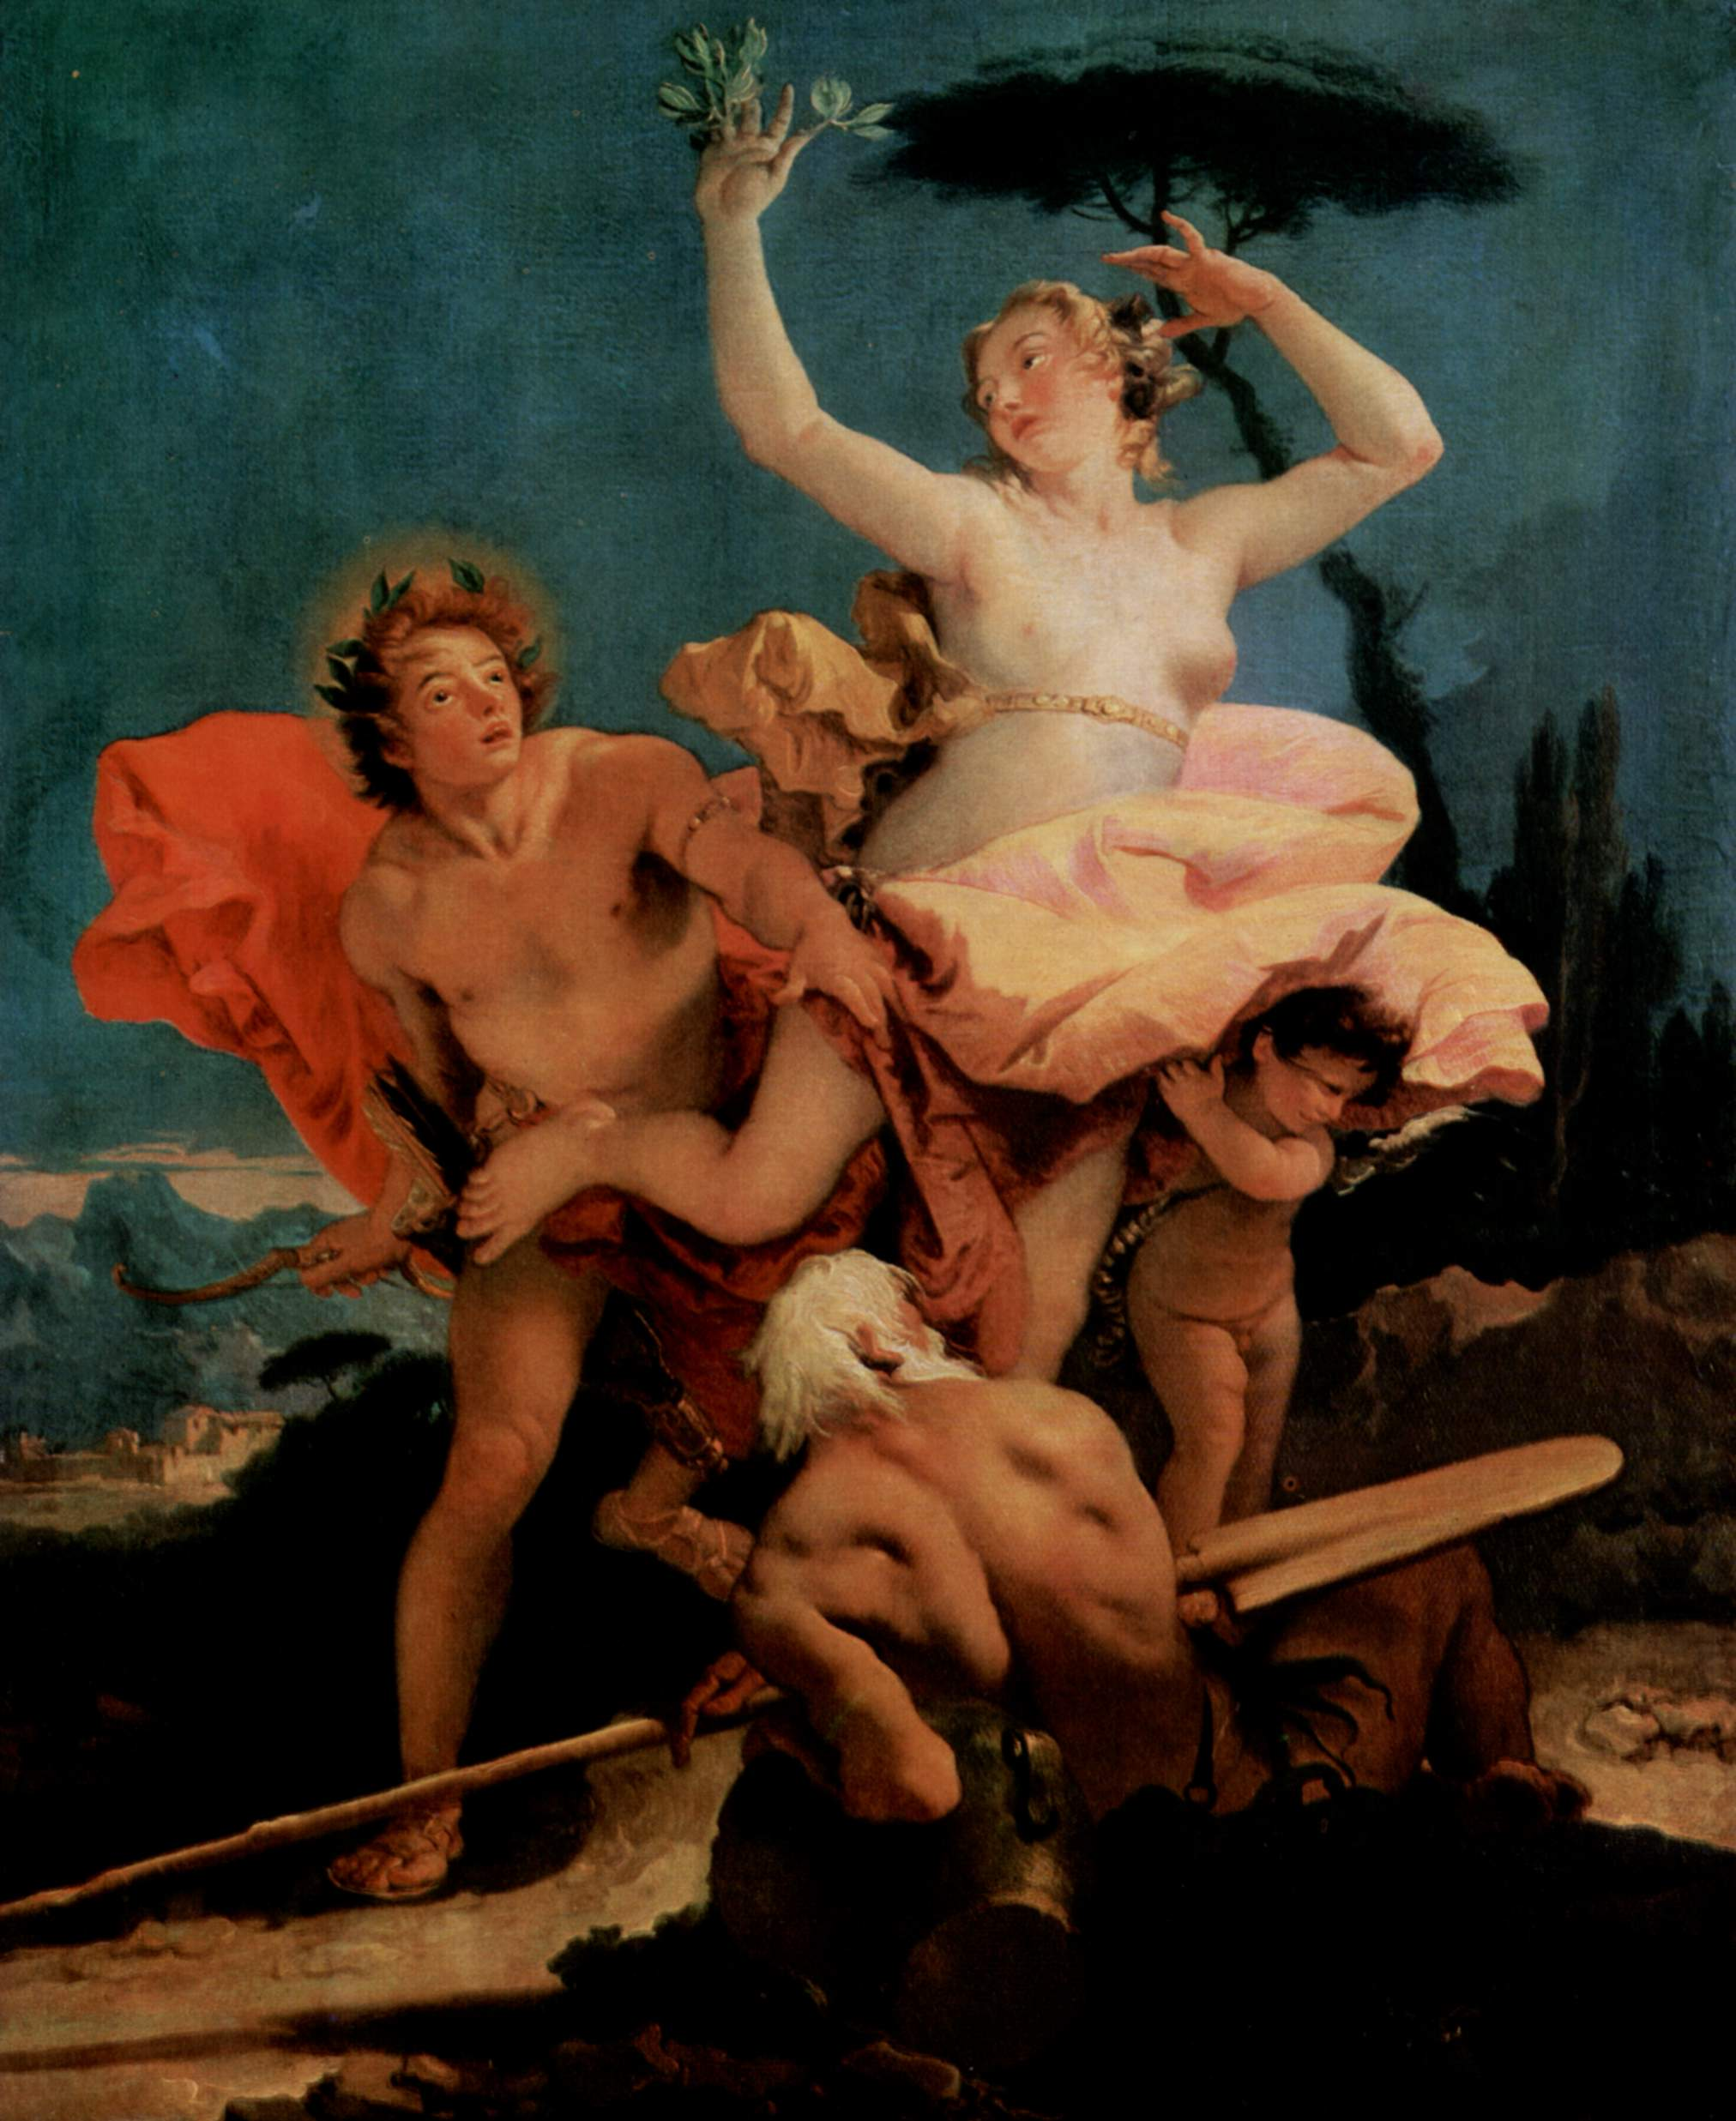 http://uploads0.wikipaintings.org/images/giovanni-battista-tiepolo/apollo-and-daphne-1744.jpg